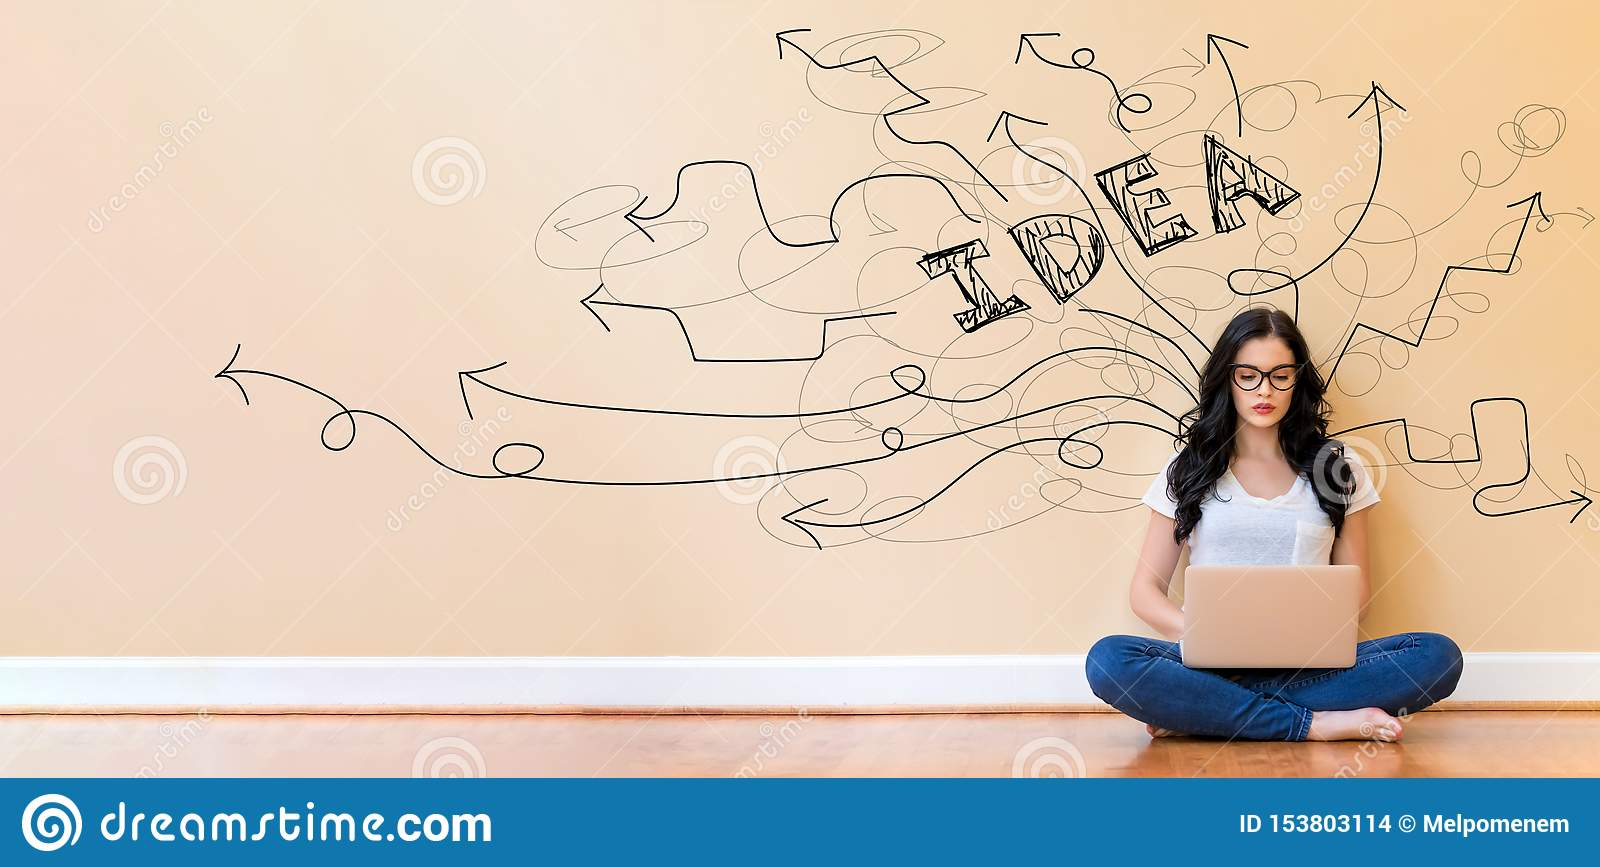 Brainstorming idea arrows with woman using a laptop